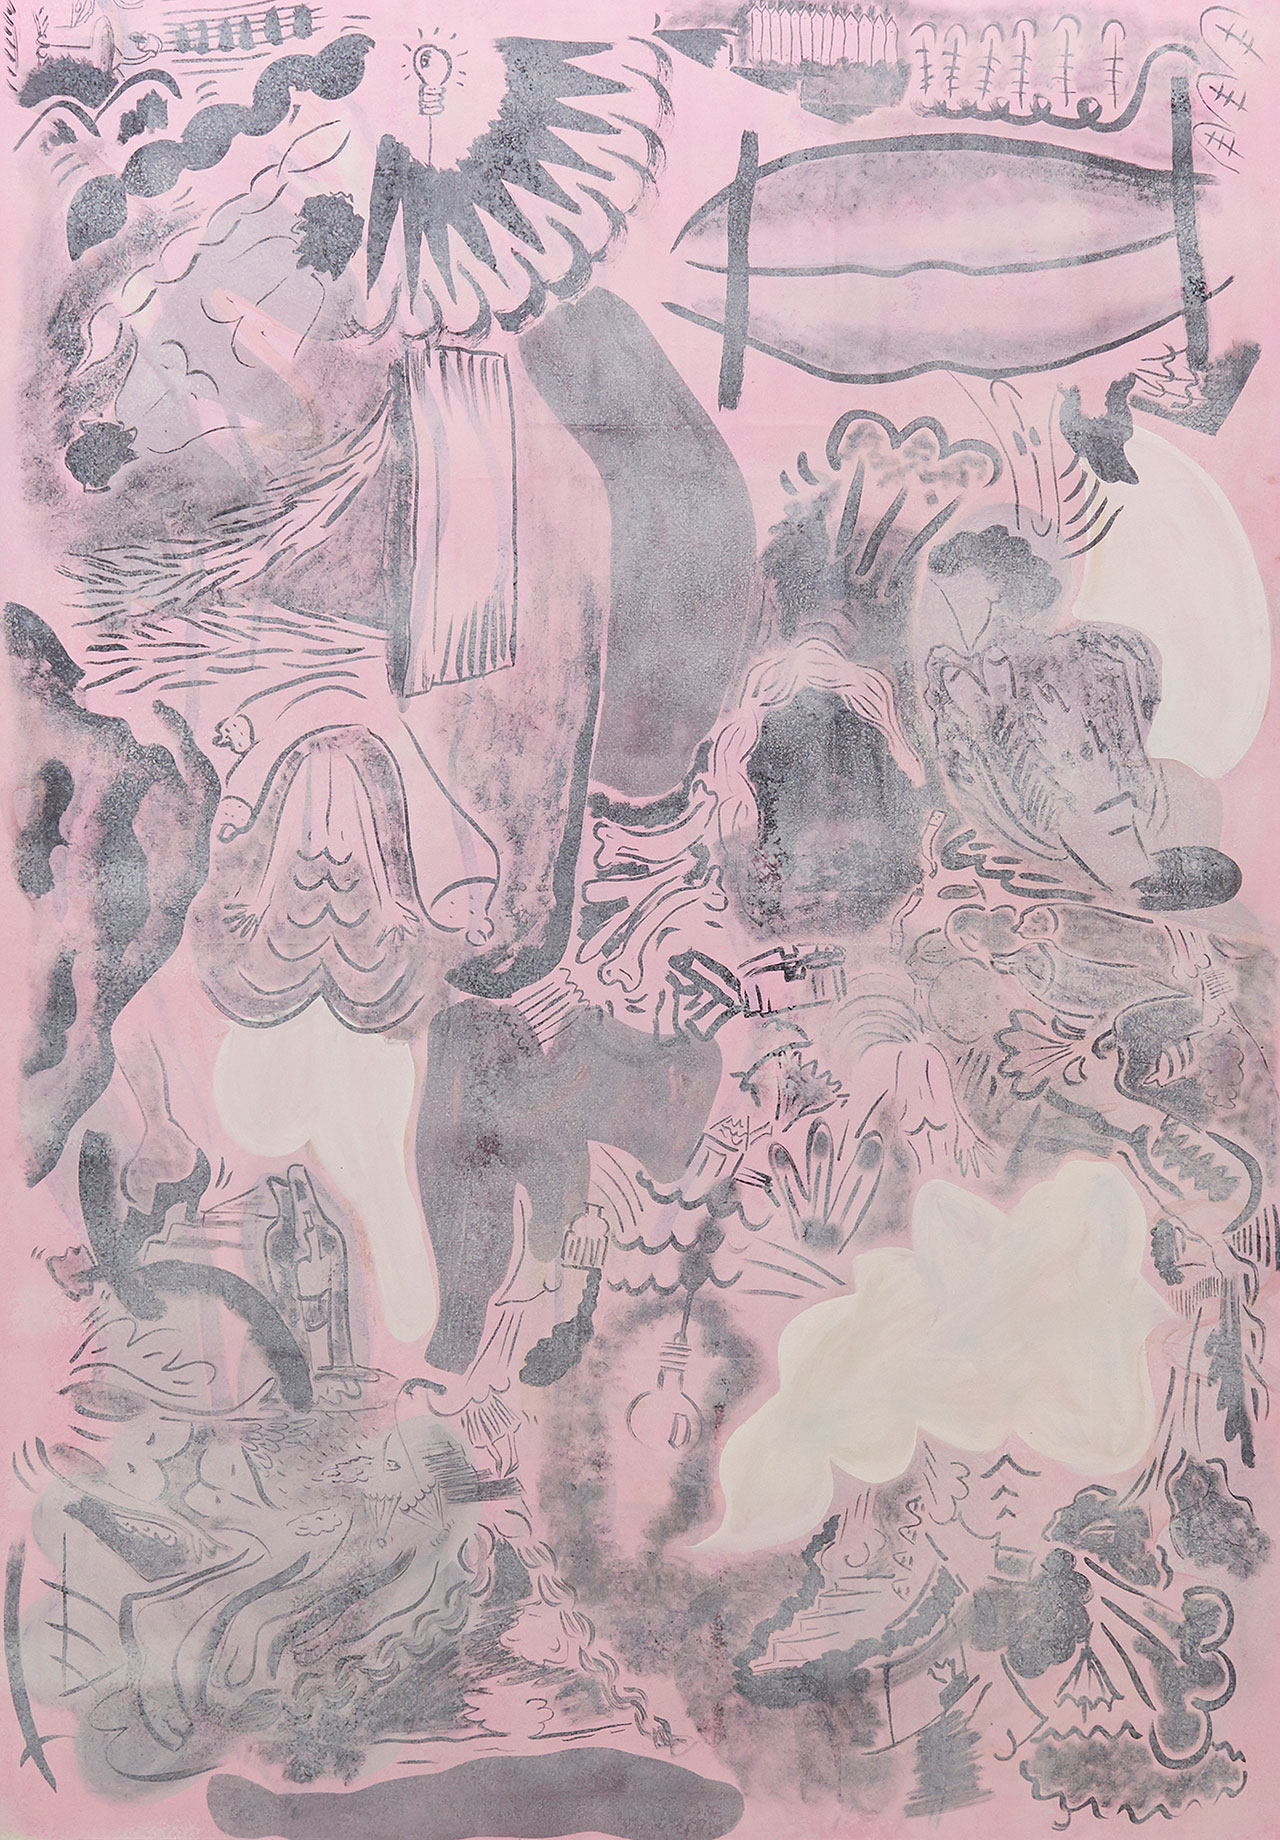 Sofia Stevi, About Everything, 2016. Ink, acrylic, gouache on cotton, 200x140 cm. Courtesy The Breeder.